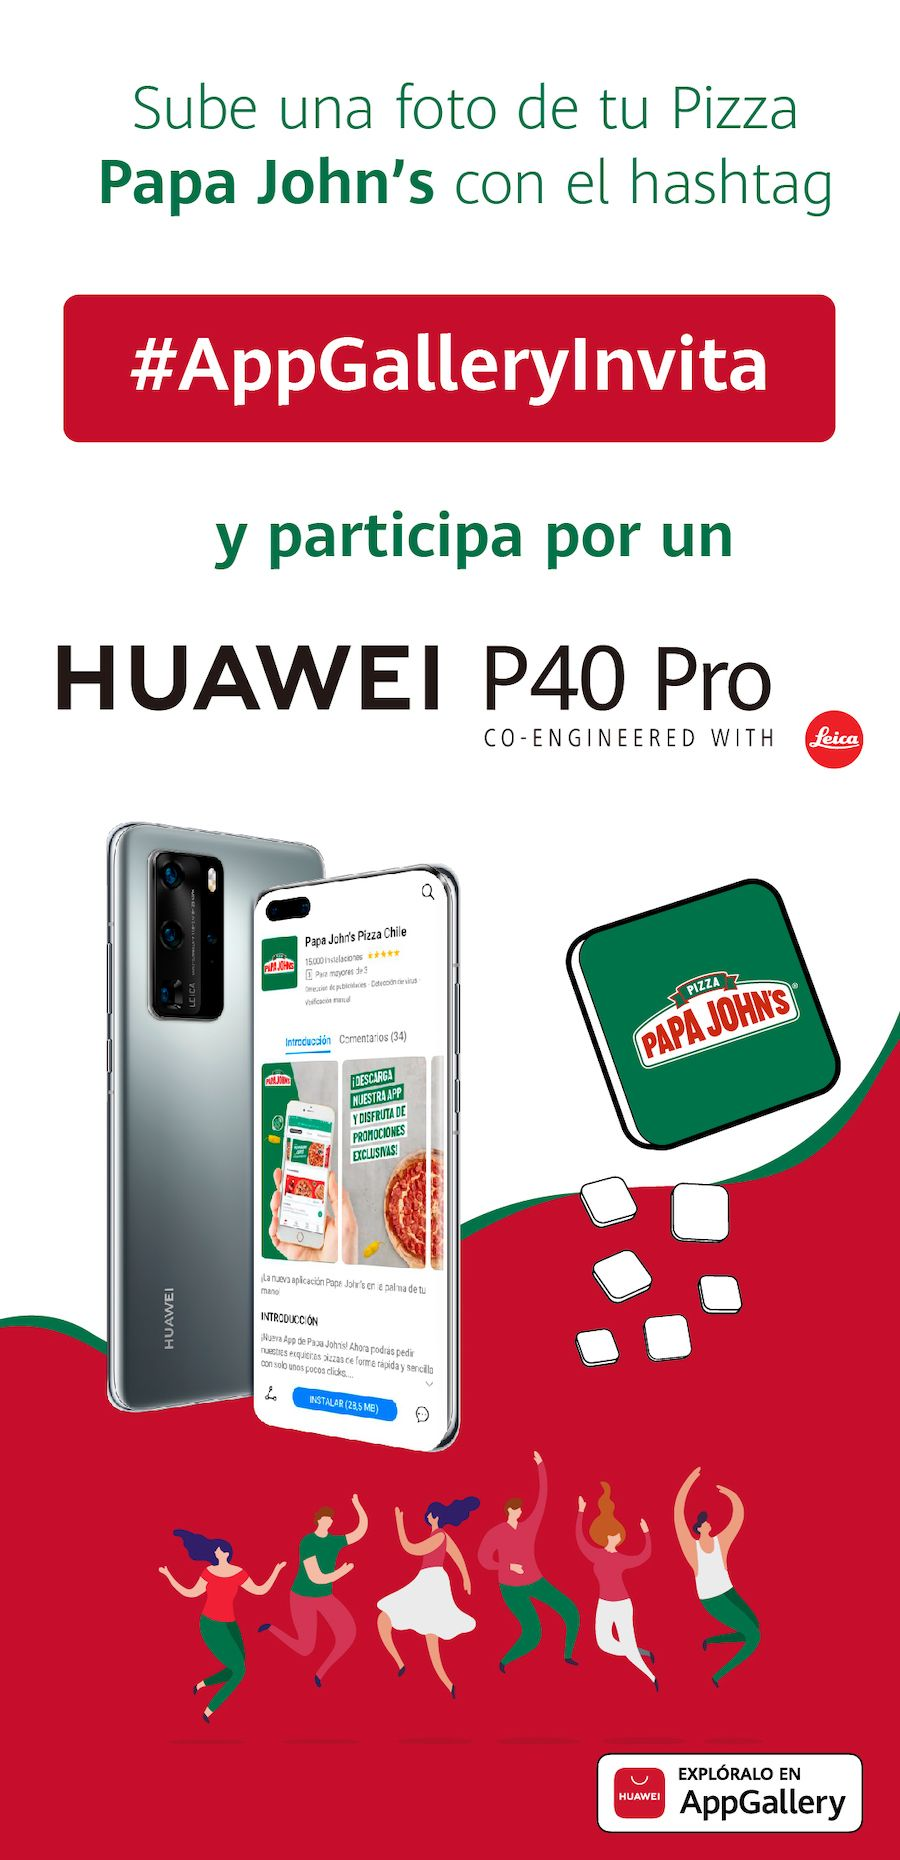 Pizza AppGallery HUAWEI